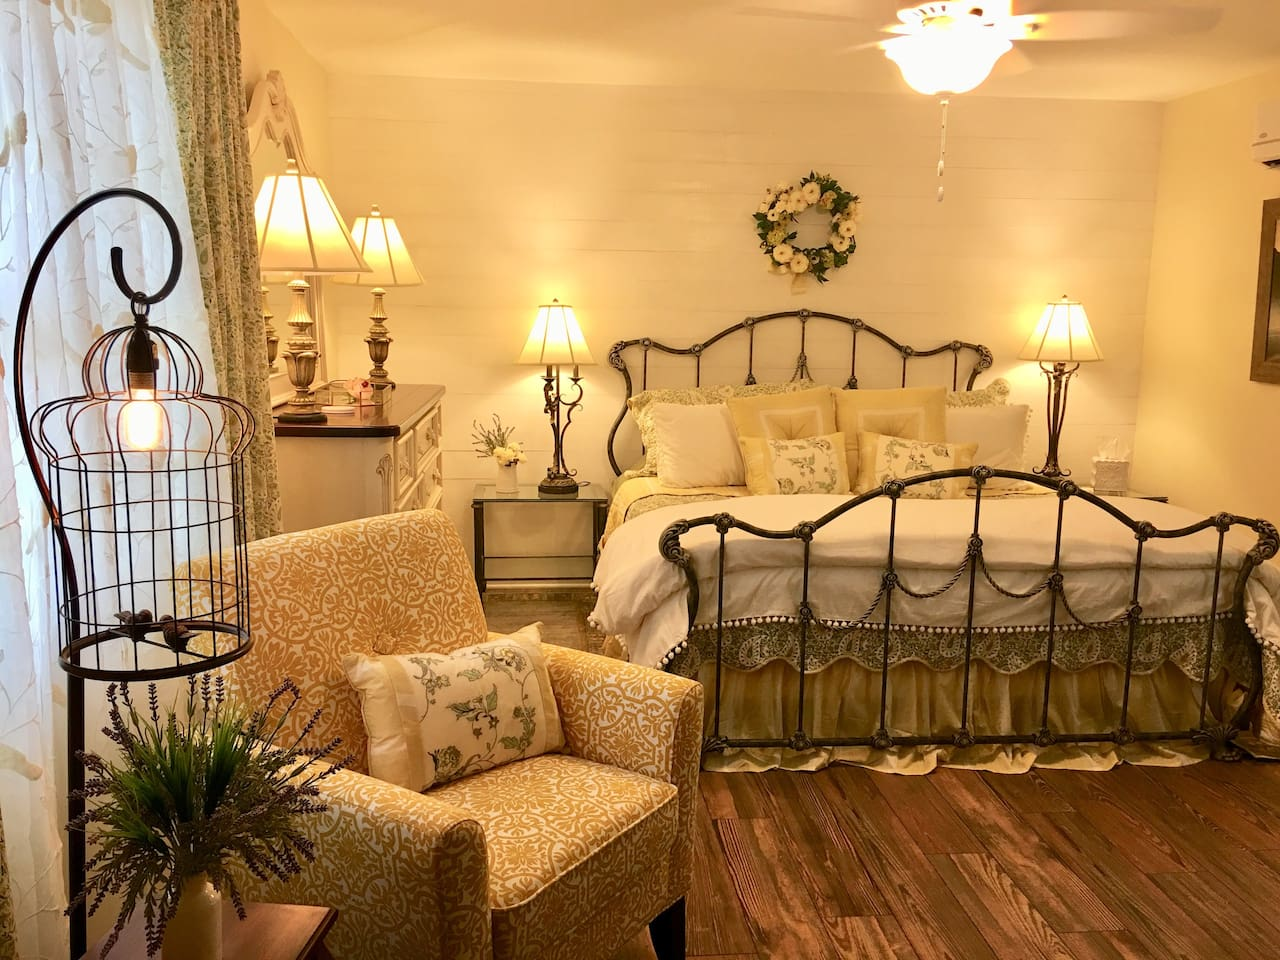 """The Haven"" at The Crane's Nest Farmhouse features a king size bed, sitting area and en-suite and is fully appointed for you convenience, comfort and enjoyment."